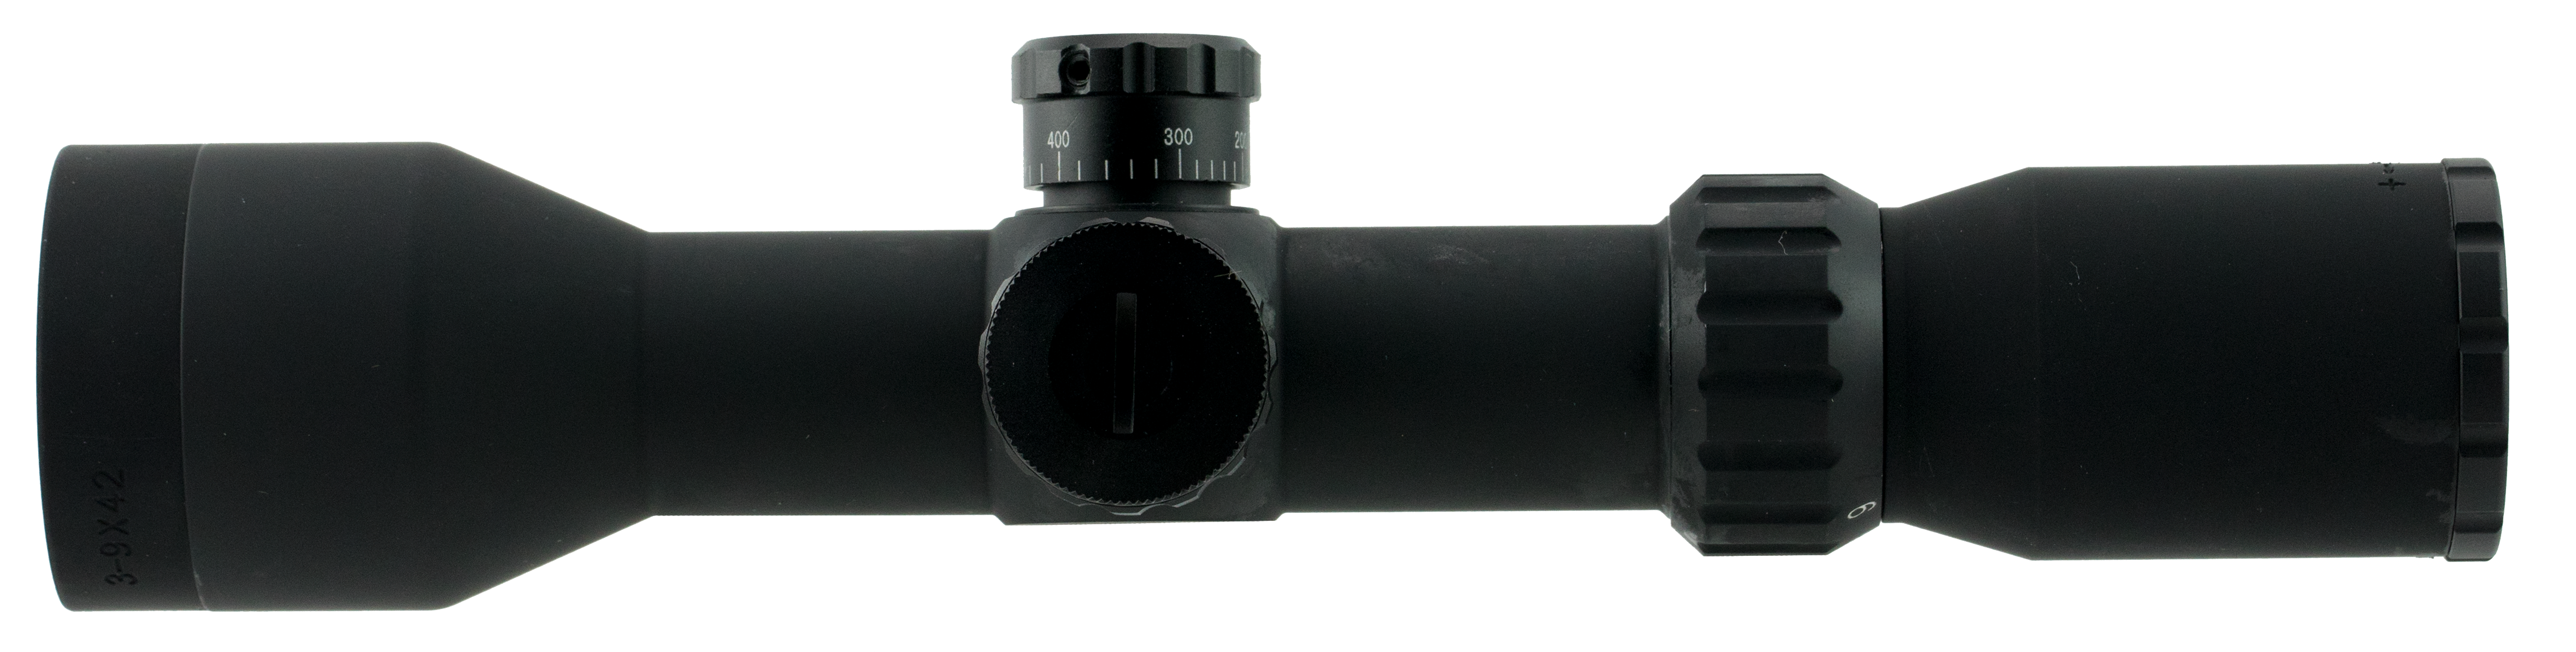 Aim Sports JXPFER3942G XPF 3-9x 42mm Obj 41.9-14.1 ft @ 100 yds FOV 30mm Tube Black Matte Illuminated Range Finding